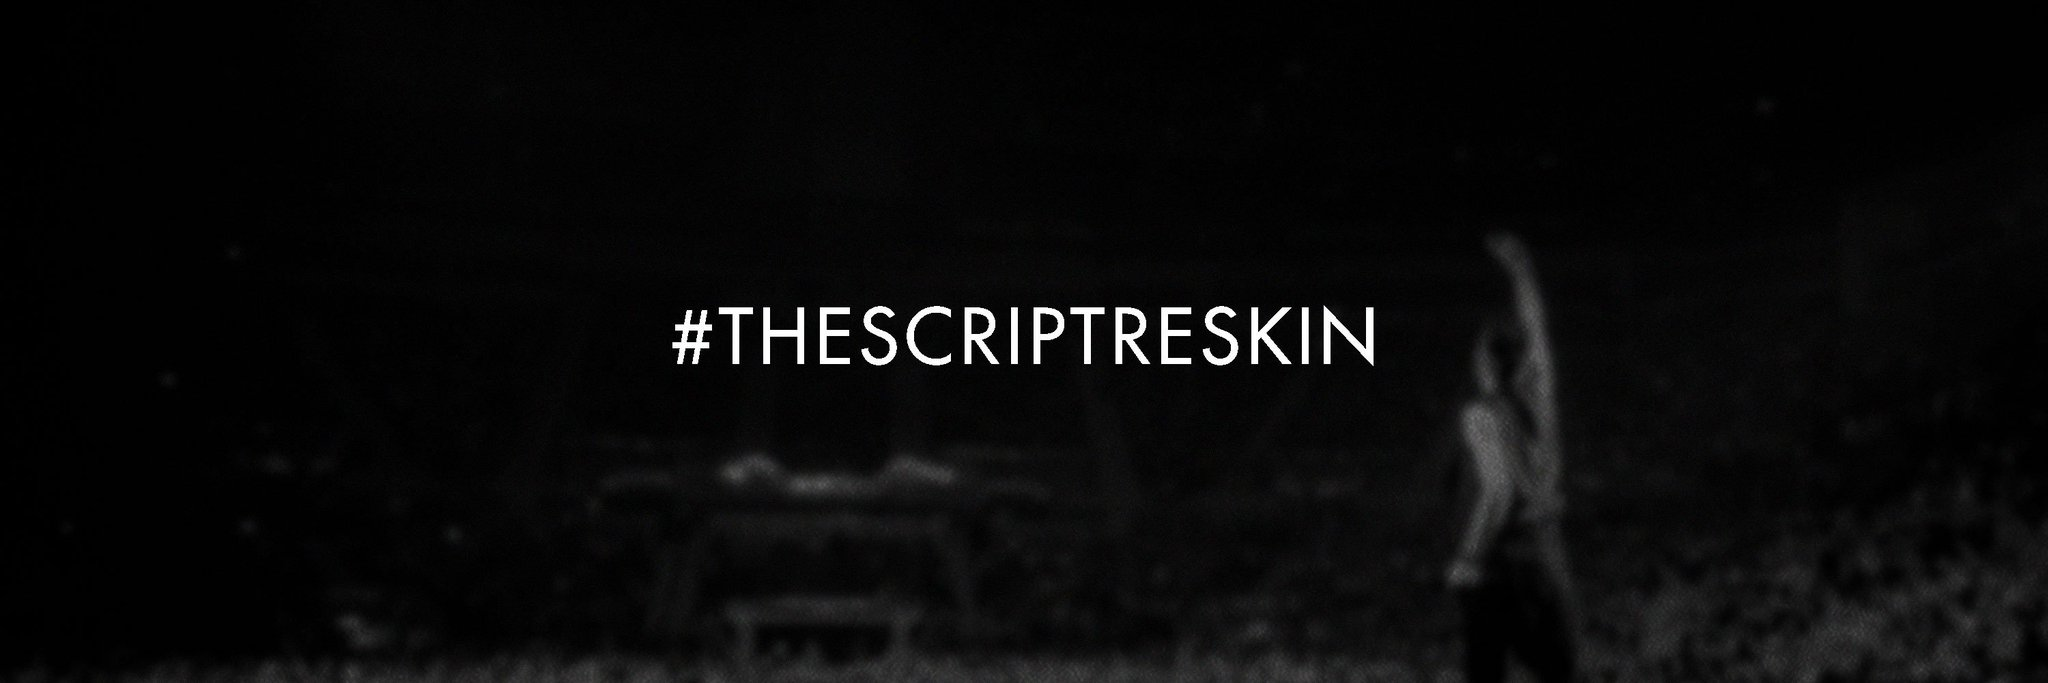 We'll be announcing the winner of our second #TheScriptReskin competition at 5PM! Who do you think should win? https://t.co/sQrdgLIaLj